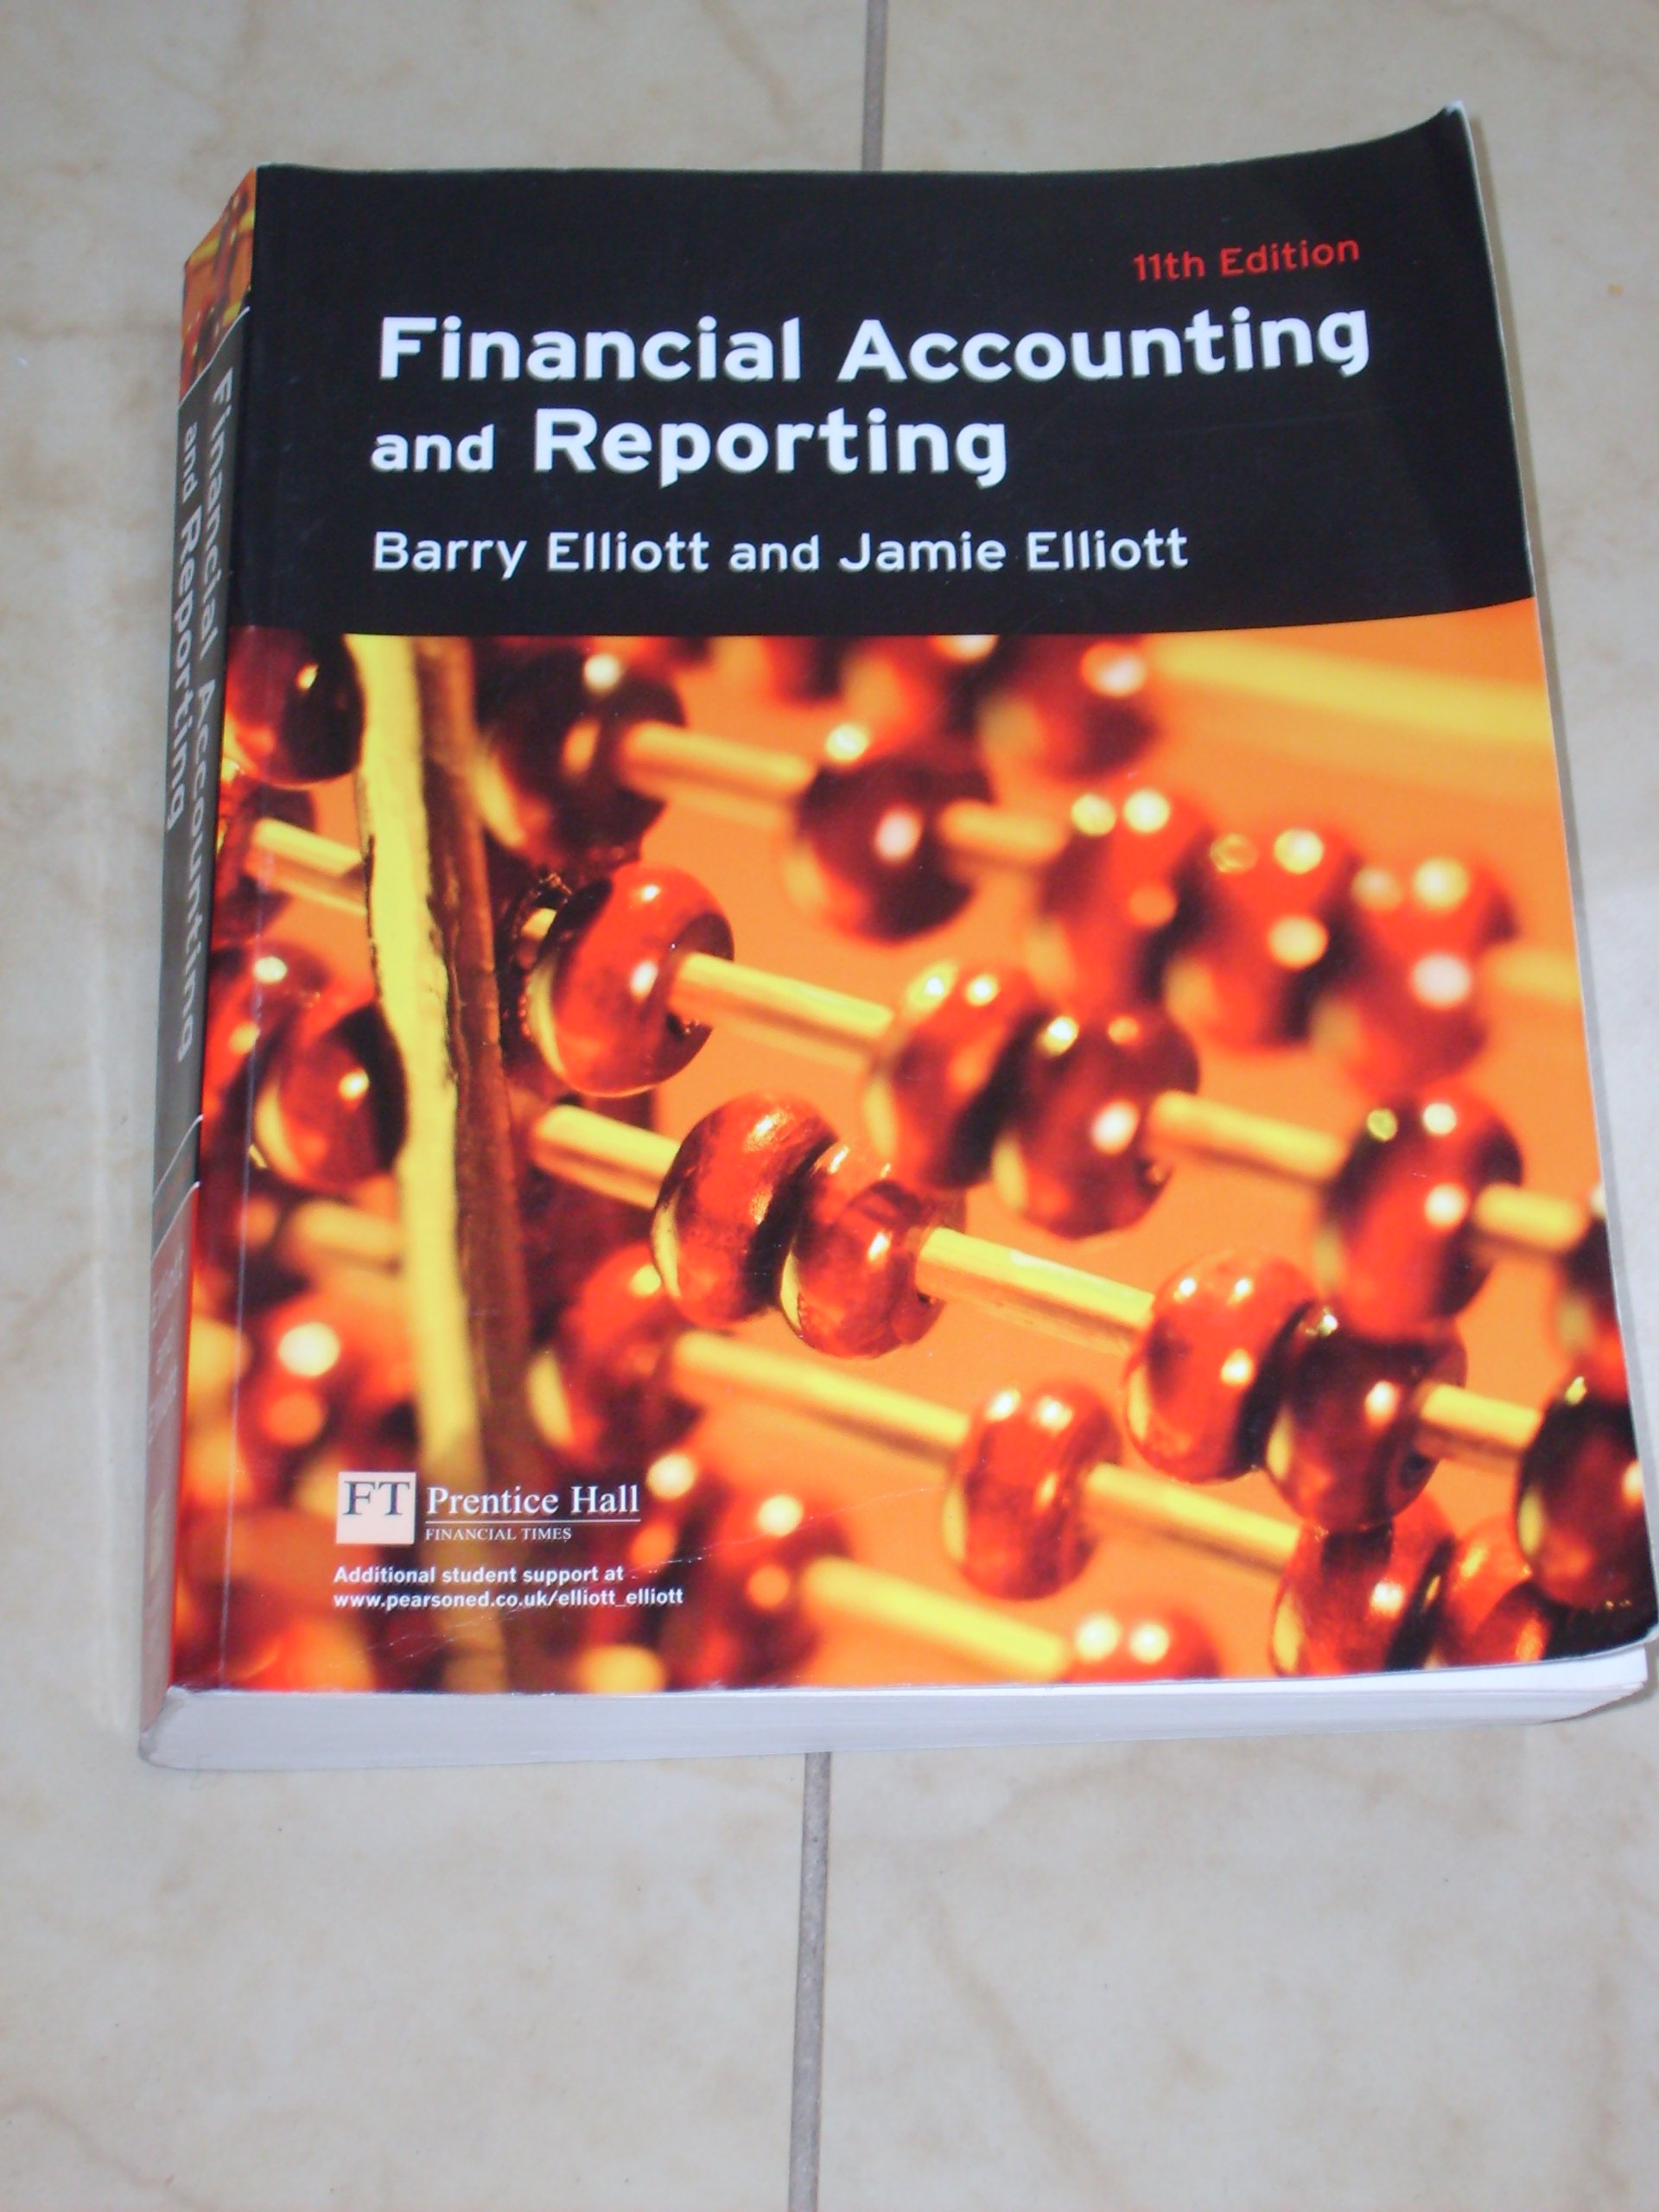 FOR SALE: Financial Accounting and Reporting (11th Edition)